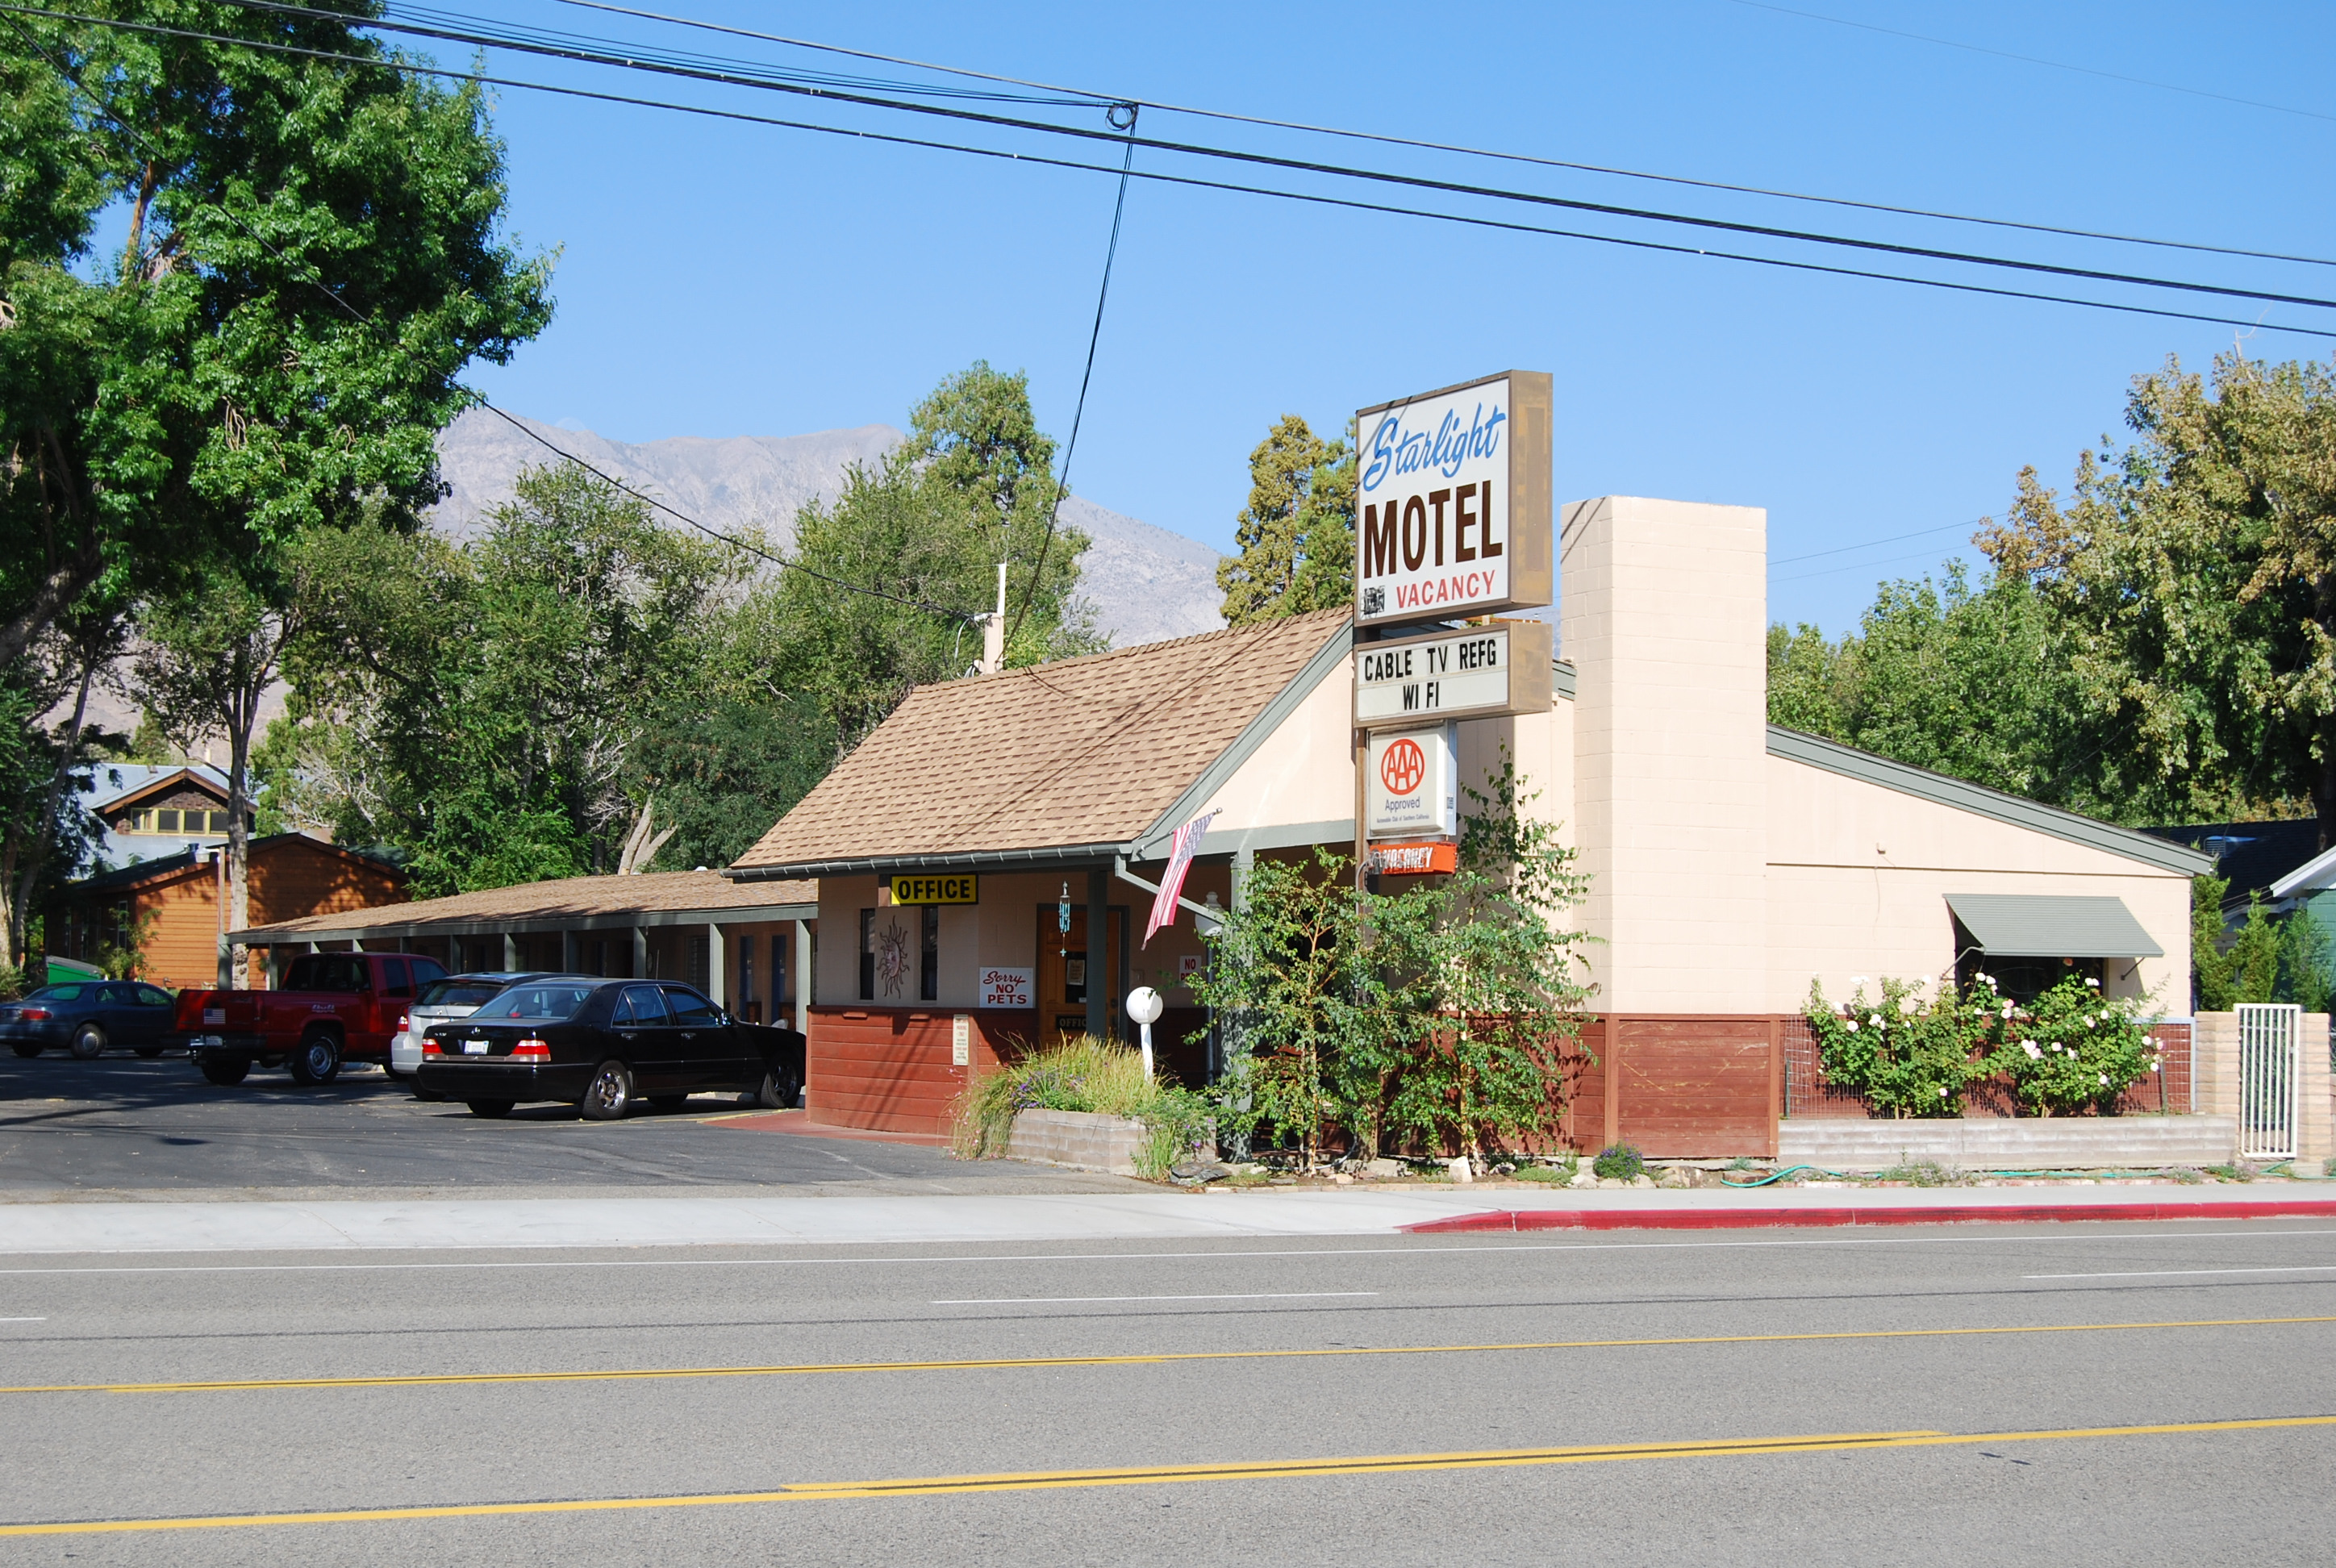 Starlight Motel